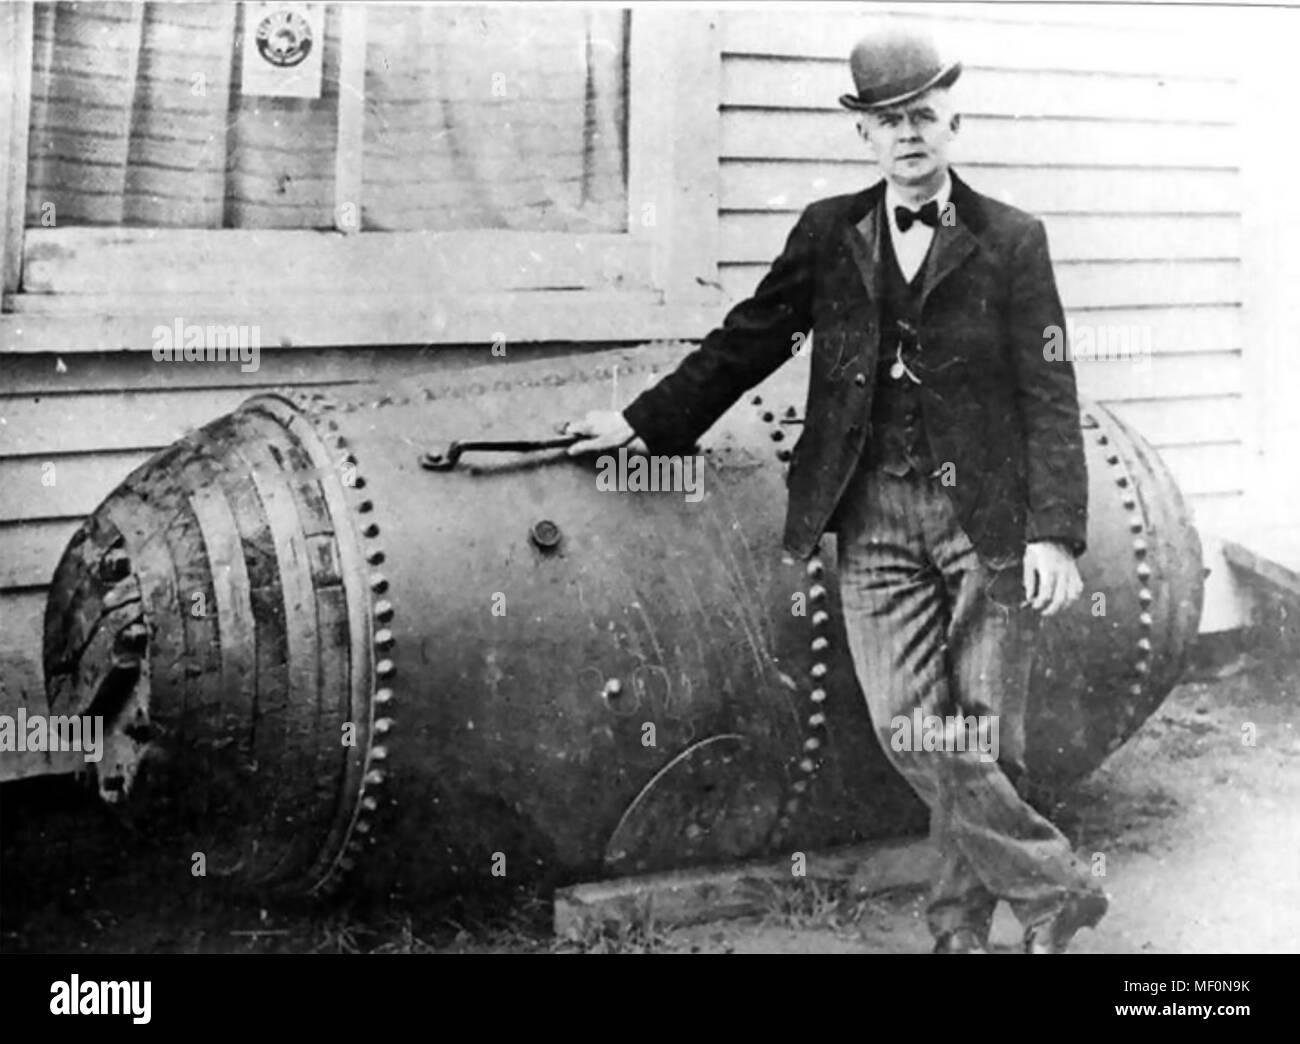 BOBBY LEACH (1858-1926) Circus performer who was the second person to go over the Niagara Falls in a barrel. - Stock Image